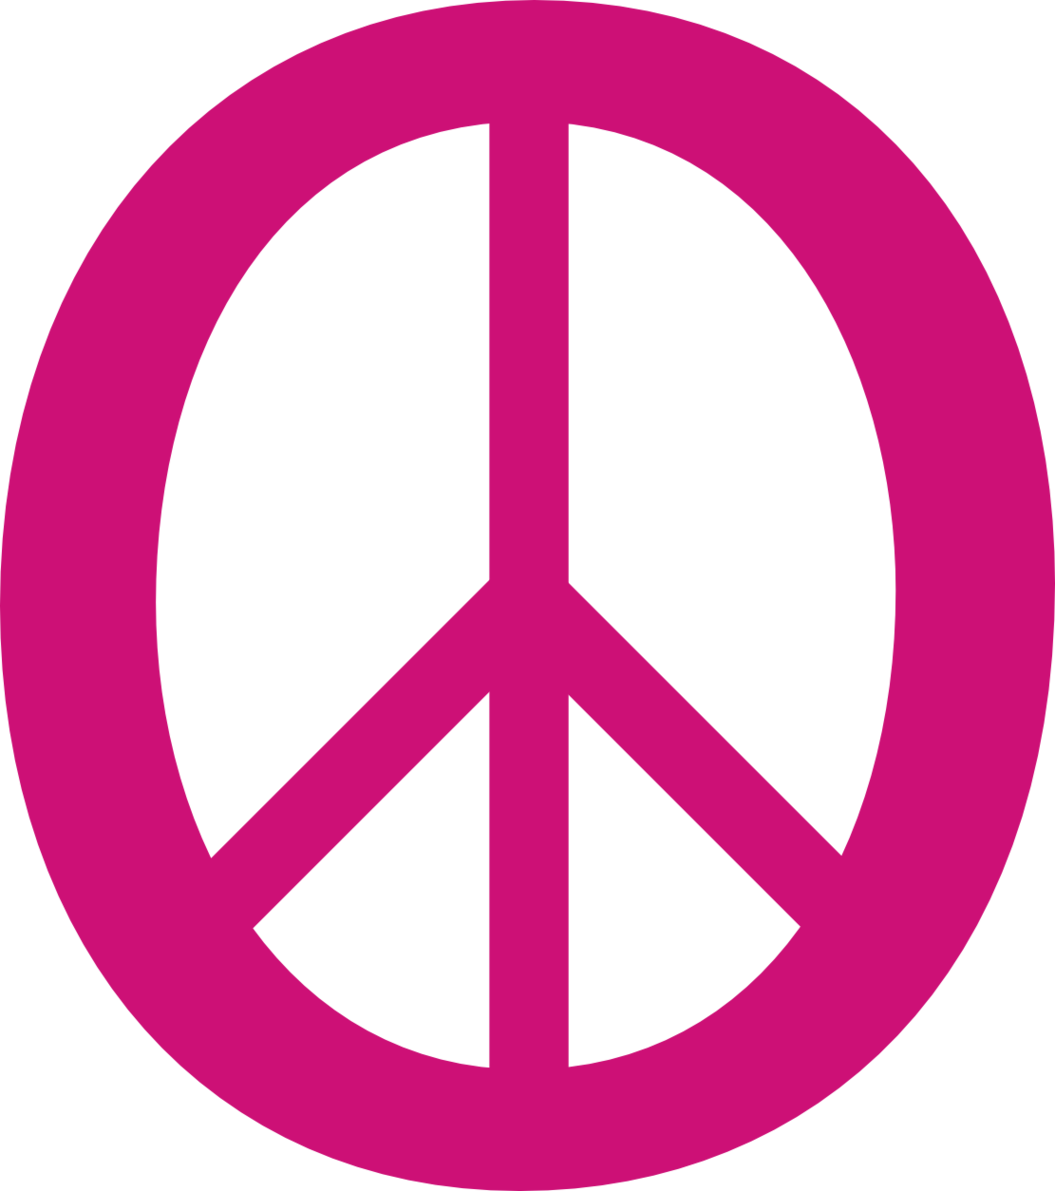 Deep Pink 3 Peace Symbol 11 Dweeb Peacesymbolorg Clipart.